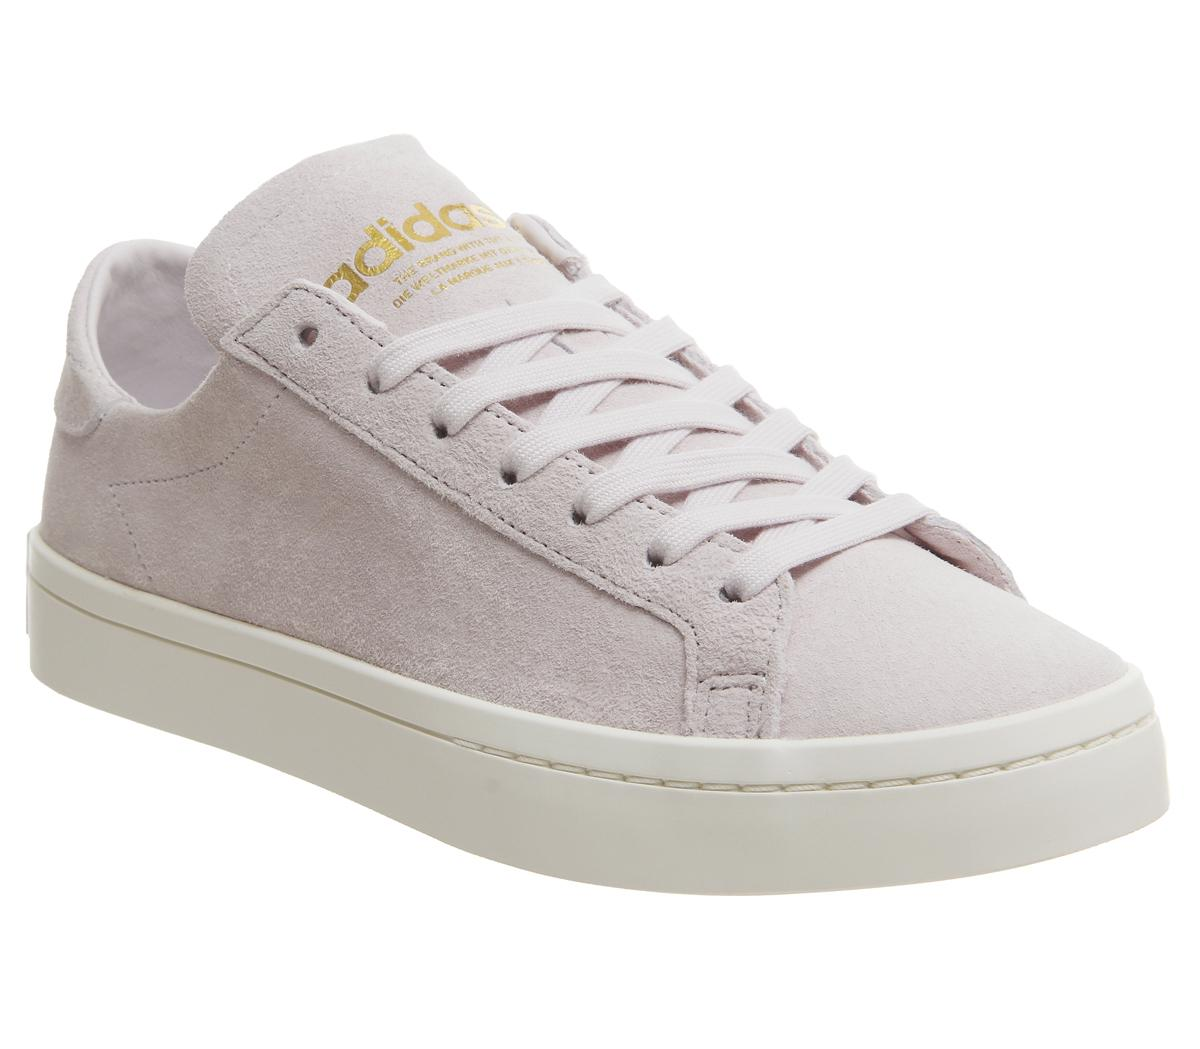 3f6bc703688e adidas Court Vantage Trainers Orchid Tint Gold Metallic Off White ...